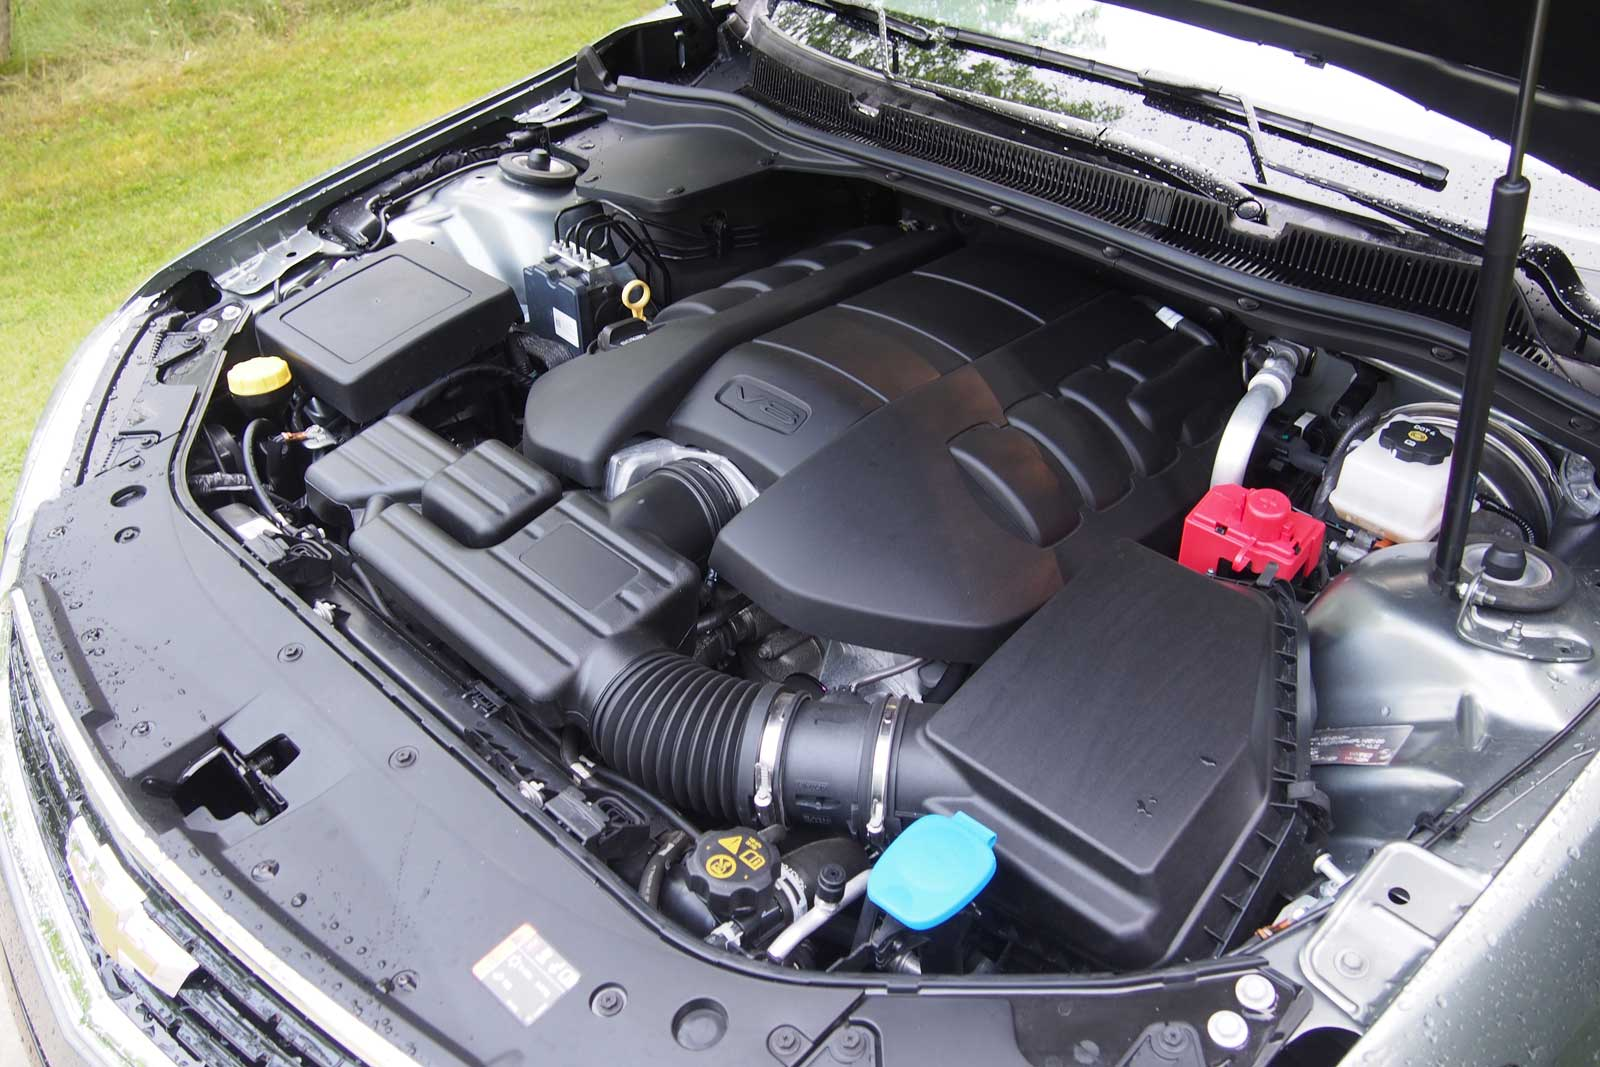 2015 chevrolet ss review autoguide 2015 chevrolet ss engine 02 publicscrutiny Gallery